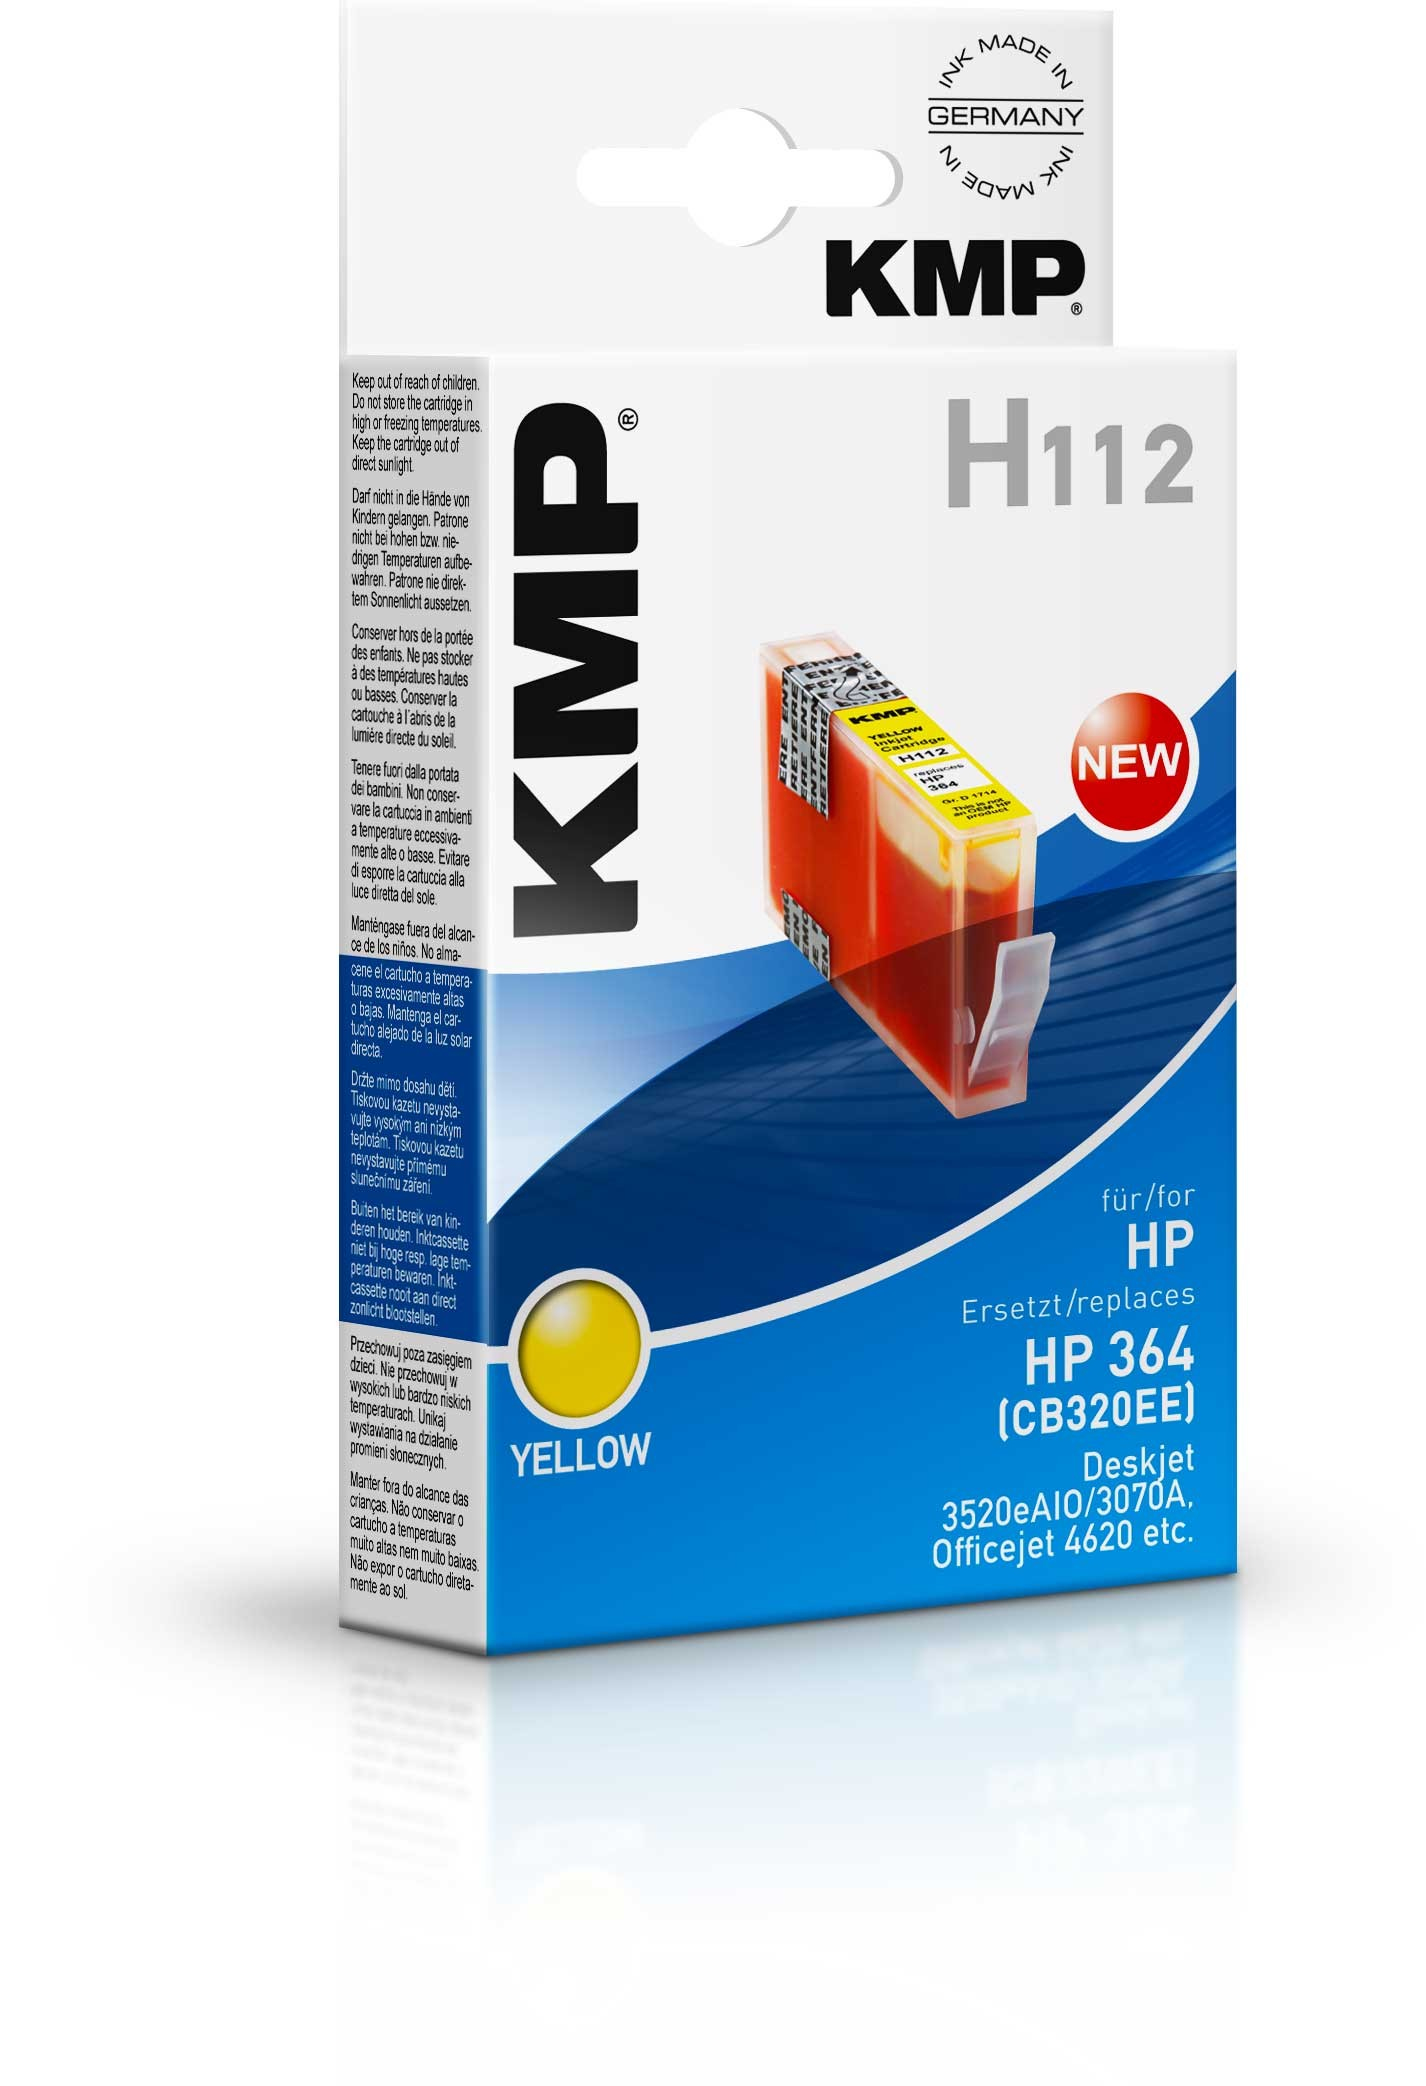 KMP H112 ink cartridge yellow compatible with HP CB 320 EE